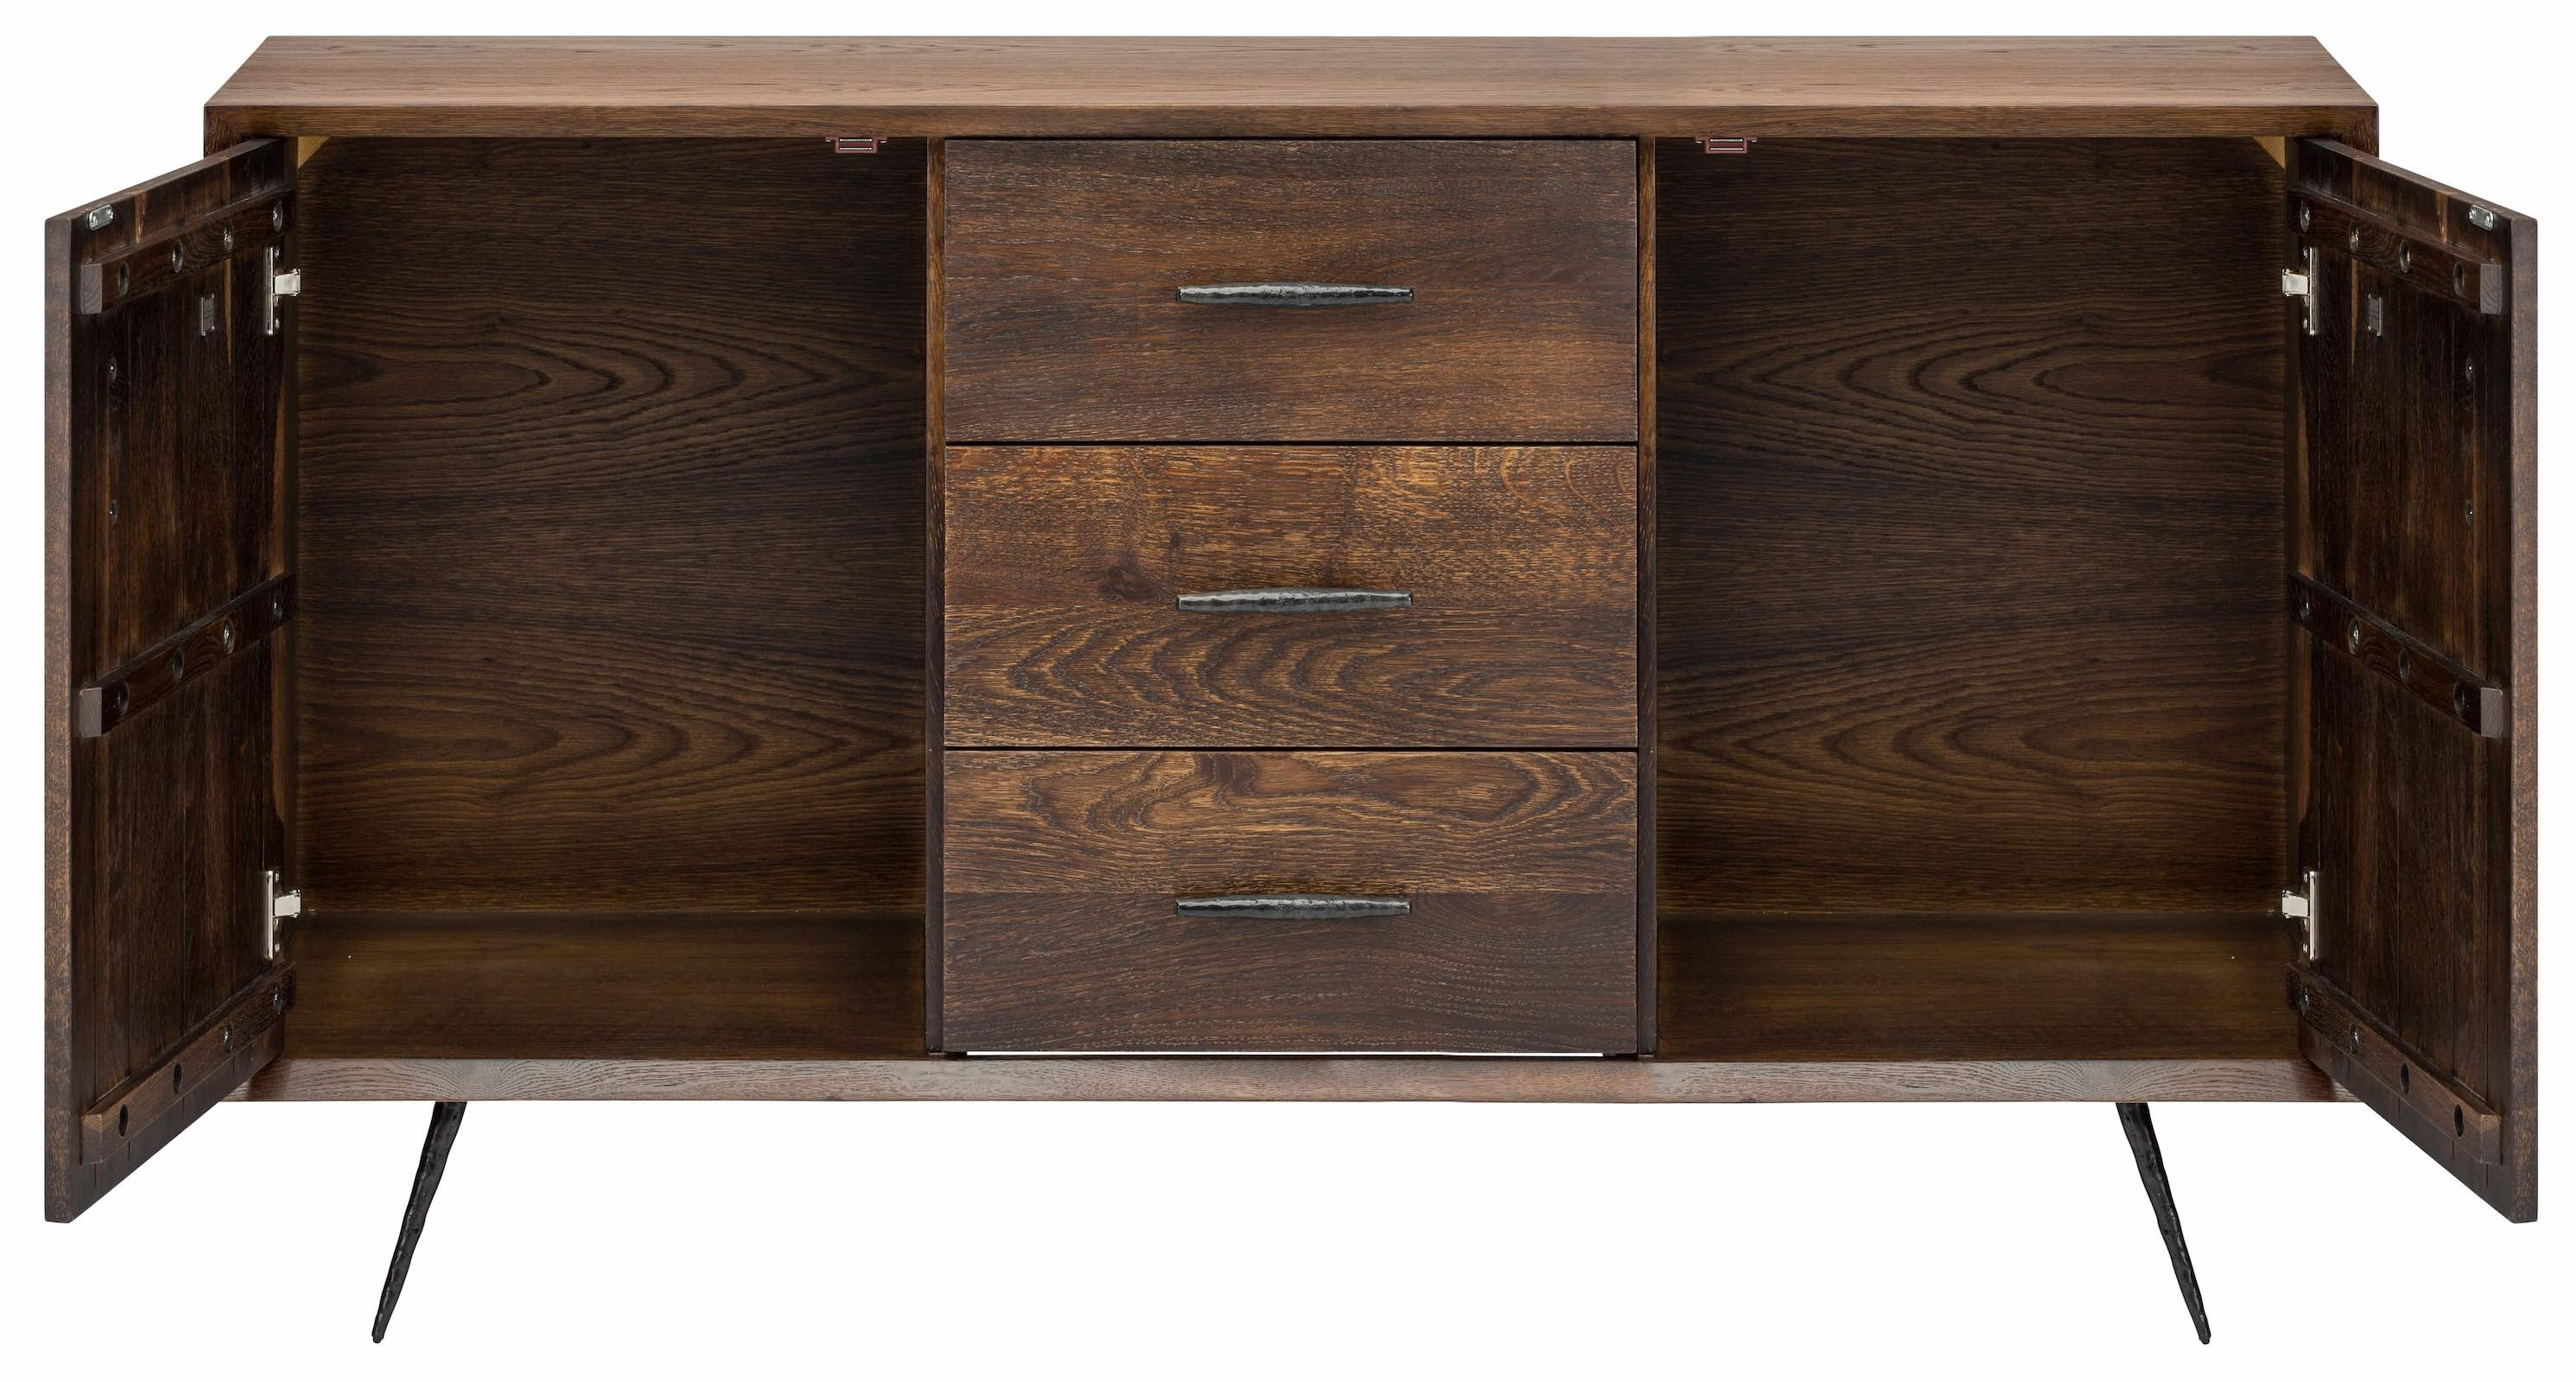 Nexa Sideboard Cabinet In Seared Oak And Black Cast Iron Legs Pertaining To Best And Newest Black Oak Wood And Wrought Iron Sideboards (View 20 of 20)